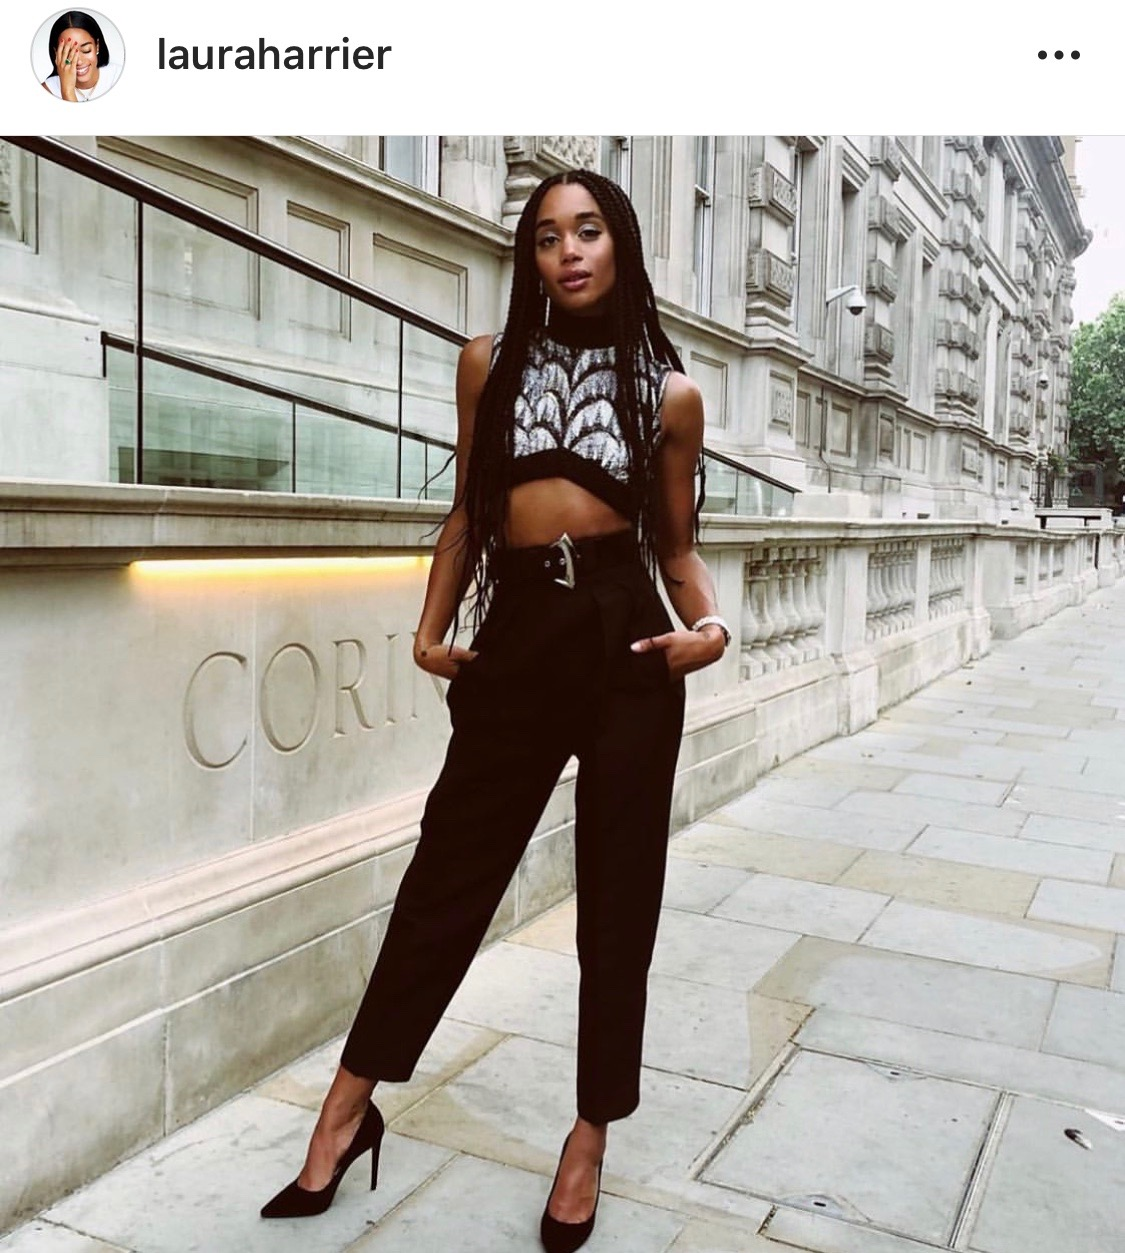 Laura-Harrier-in-Louis-Vuitton-best-dressed.jpeg